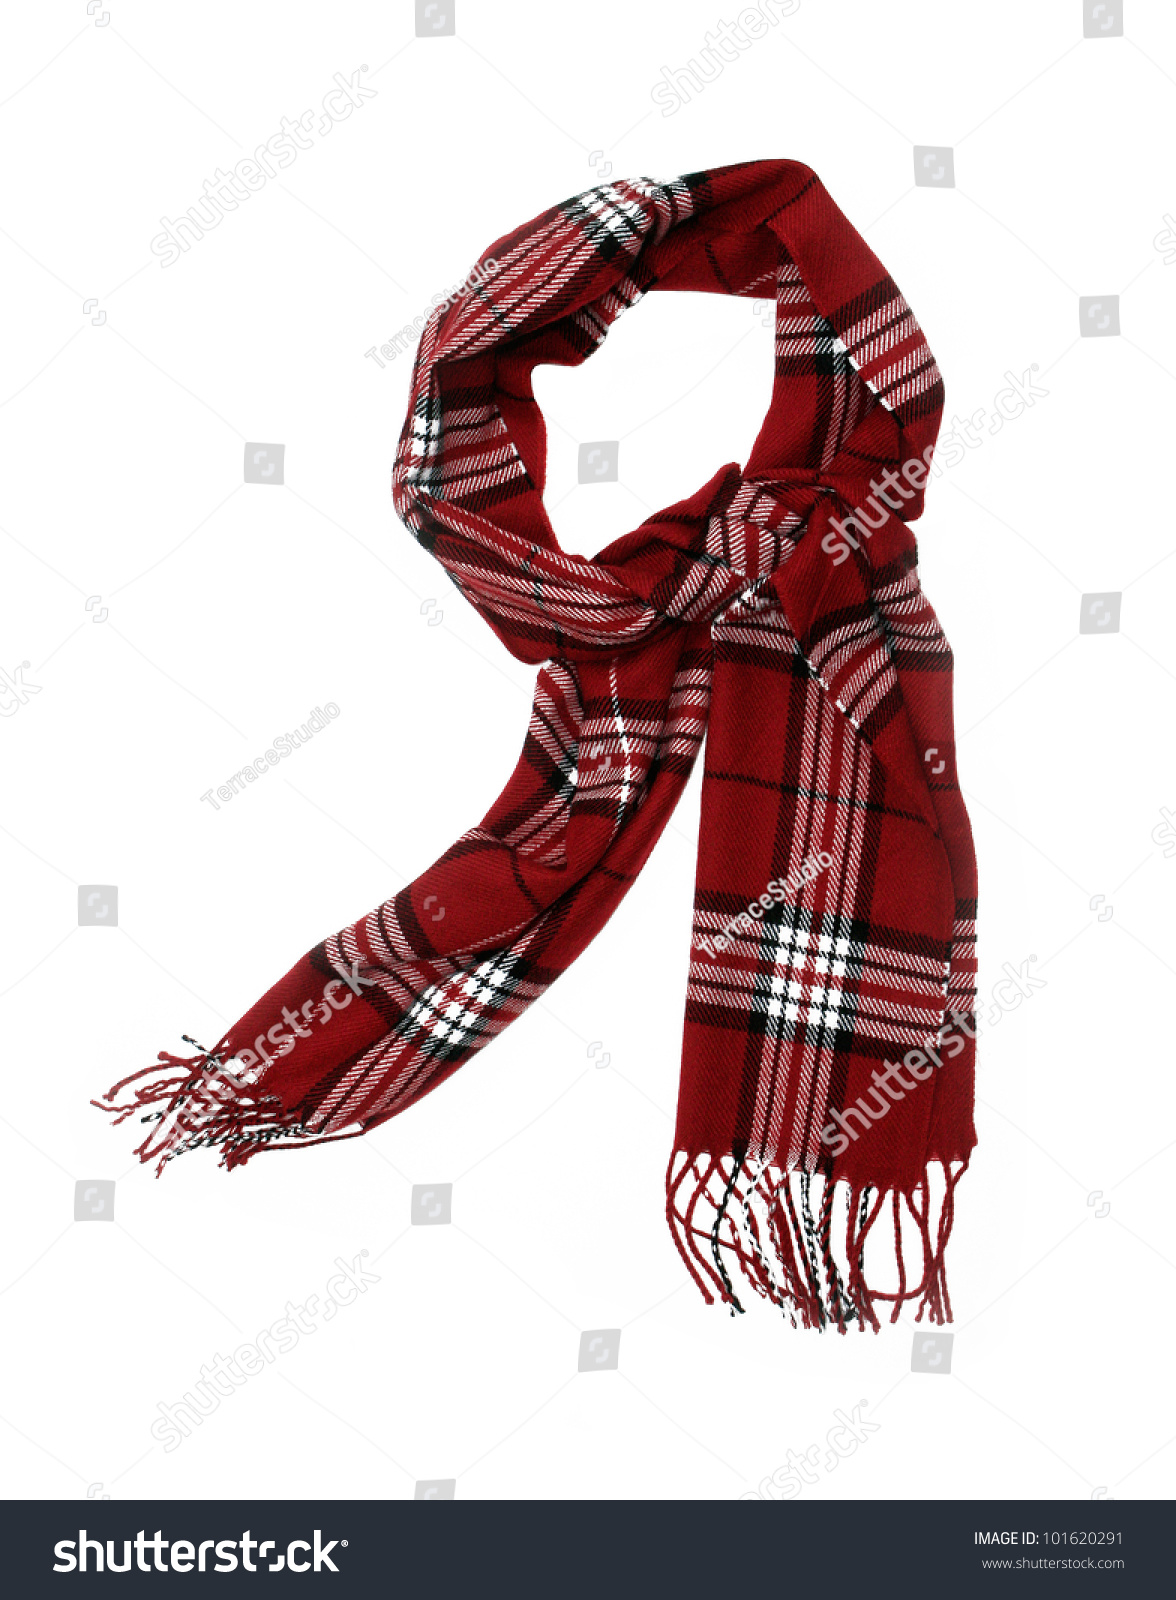 Unisex Cashmere Wool Red Plaid Scarf Stock Photo 101620291 ...